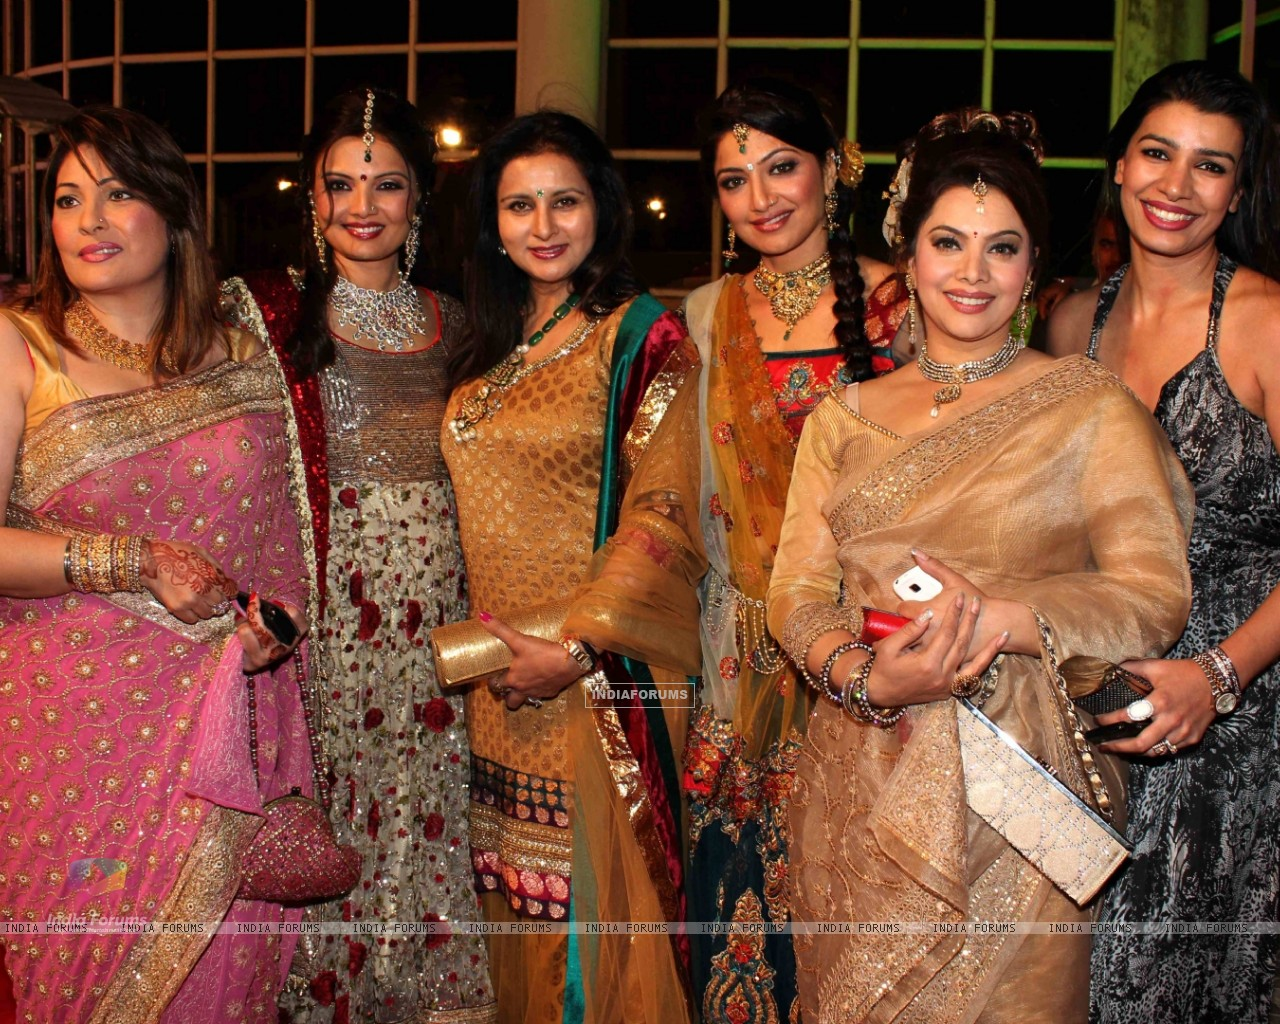 Mink, Poonam, Akruti, Kavita grace Deepshikha Nagpal wedding reception in Mumbai (180070) size:1280x1024